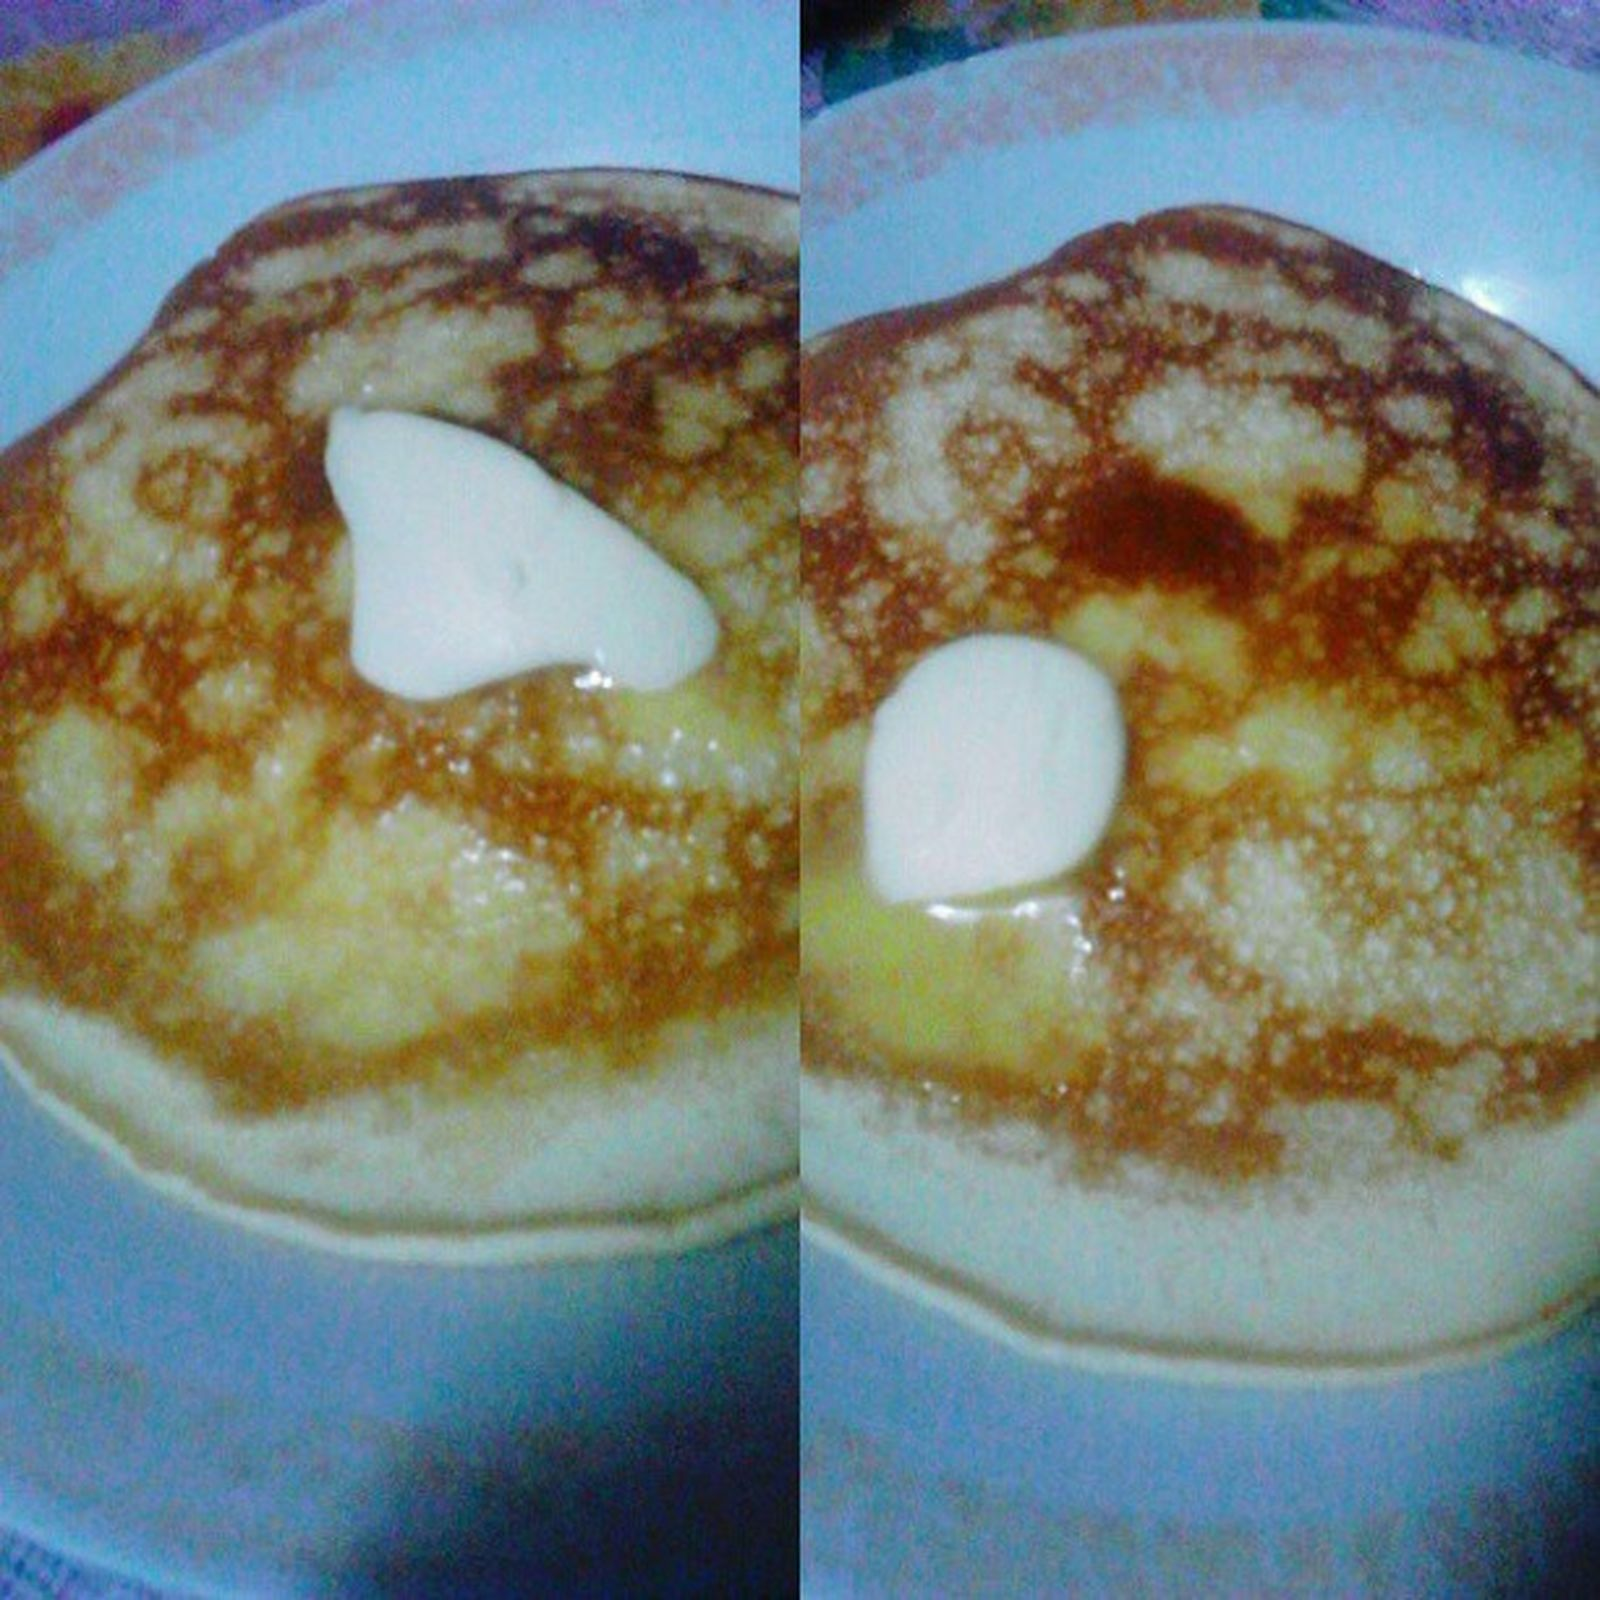 My not so good morning mood. But still i have a reward, i have this butter-melting pancake cooked by loving mom. Yourethebestmom ! Yummy